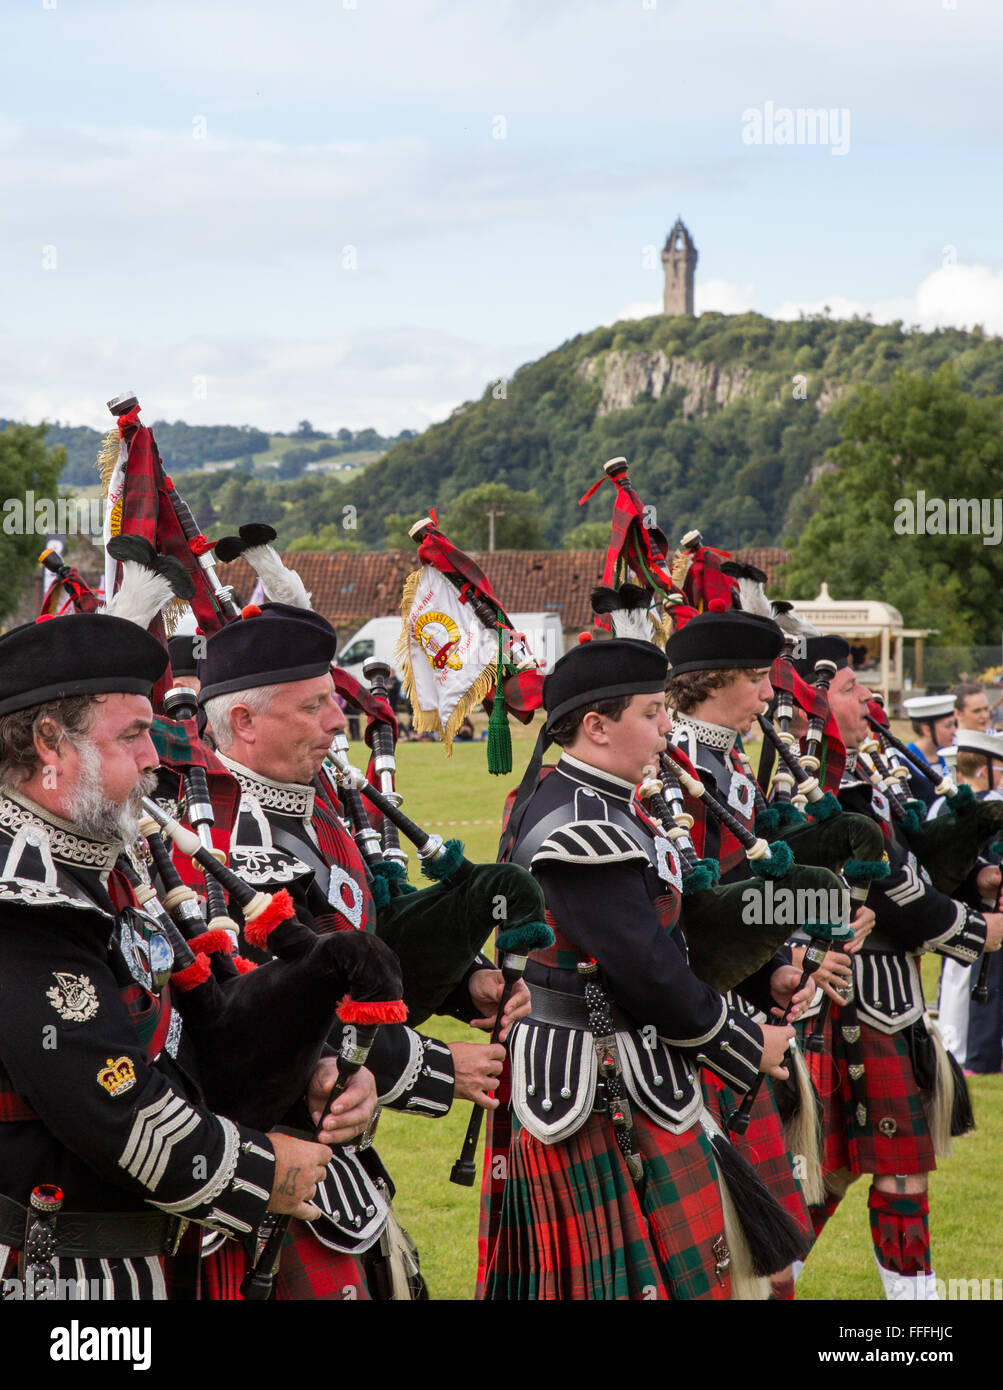 Scottish pipers playing bagpipes at the Stirling Highland games The National Wallace Monument, Stirling in Scotland Stock Photo